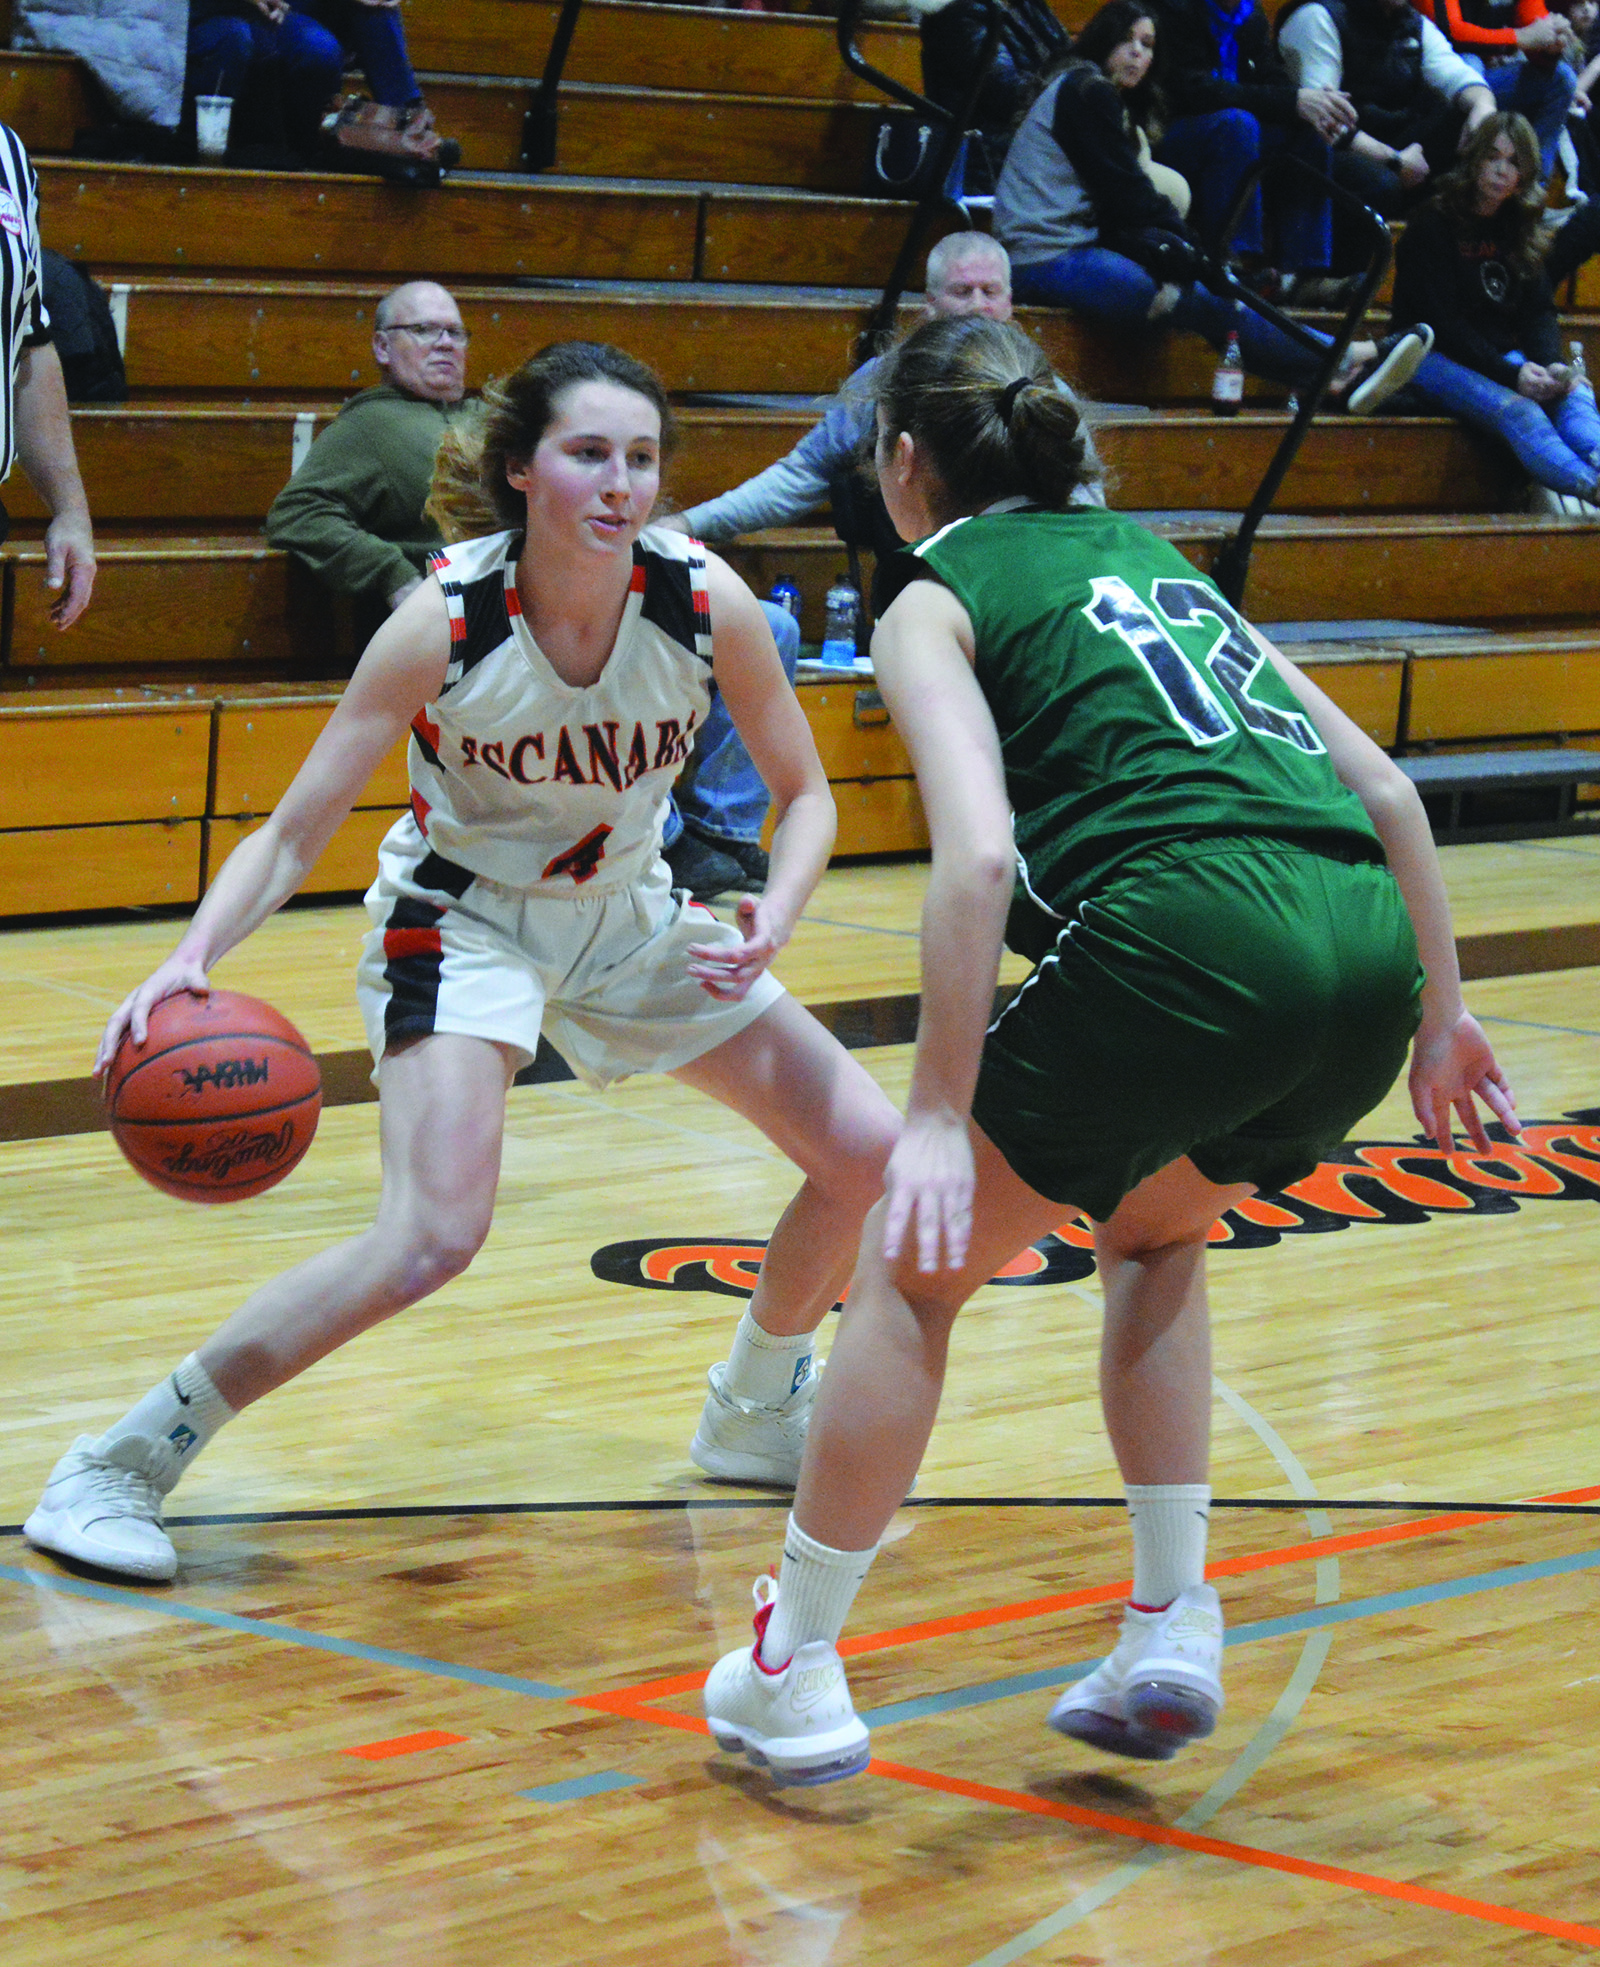 Kamin's Career-high Lifts Esky To Victory